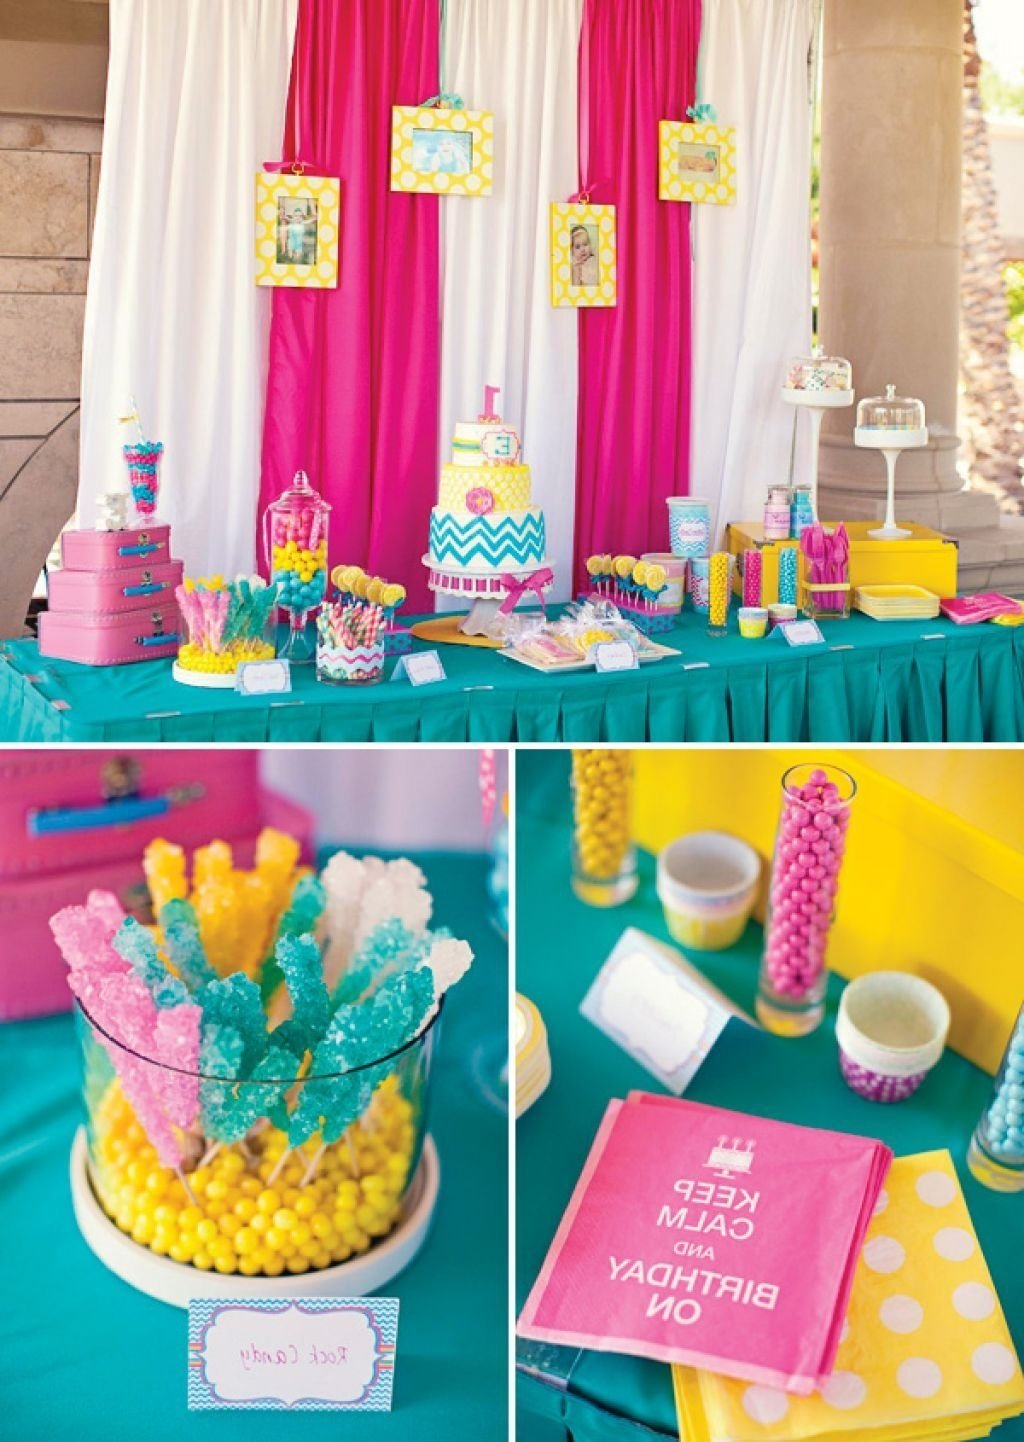 10 Awesome Three Year Old Birthday Party Ideas Outdoor Decorations Google Search Madeline 9